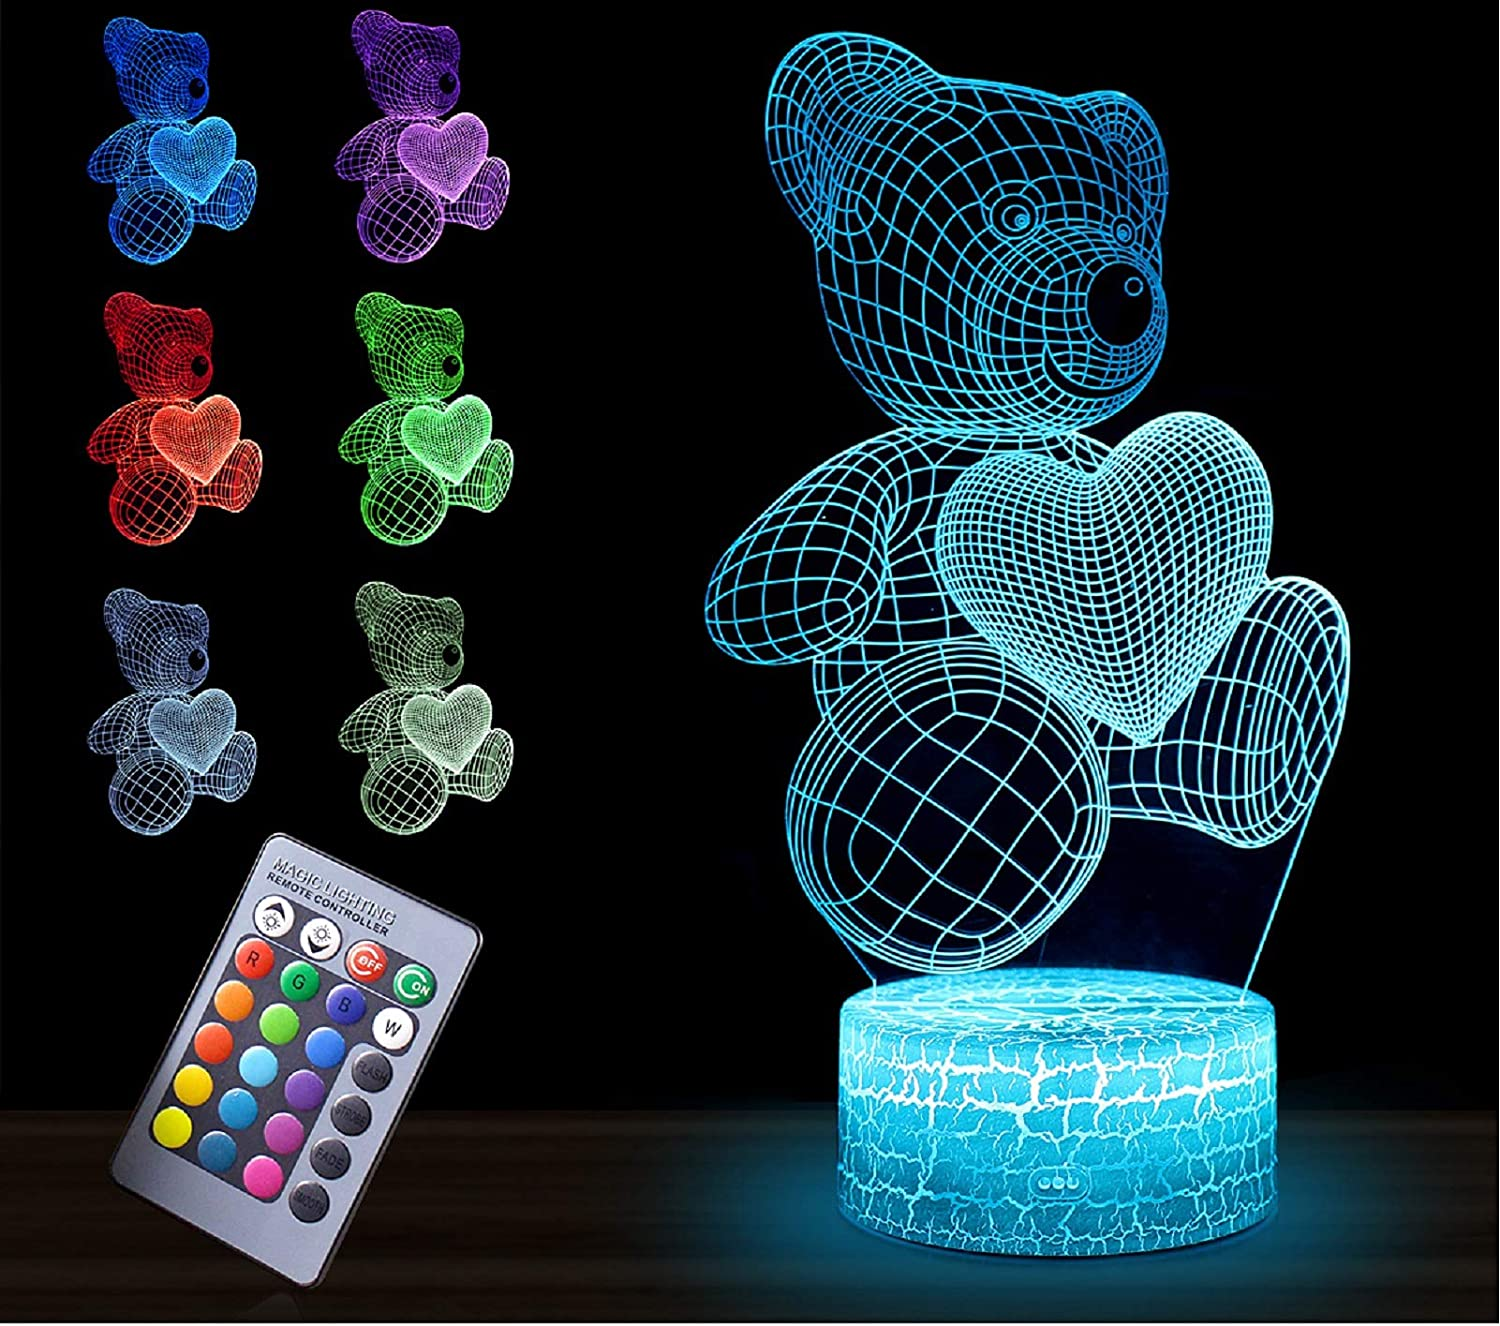 3D Night Light for Kids,3 in 1 Illusion Lamp for Home Decoration,3D Optical Illusion LED Lamps with Remote Control Bedroom Decorations Birthday,Christmas Gift Ideas for Girls Teen– Owl/Bear/Unicorn